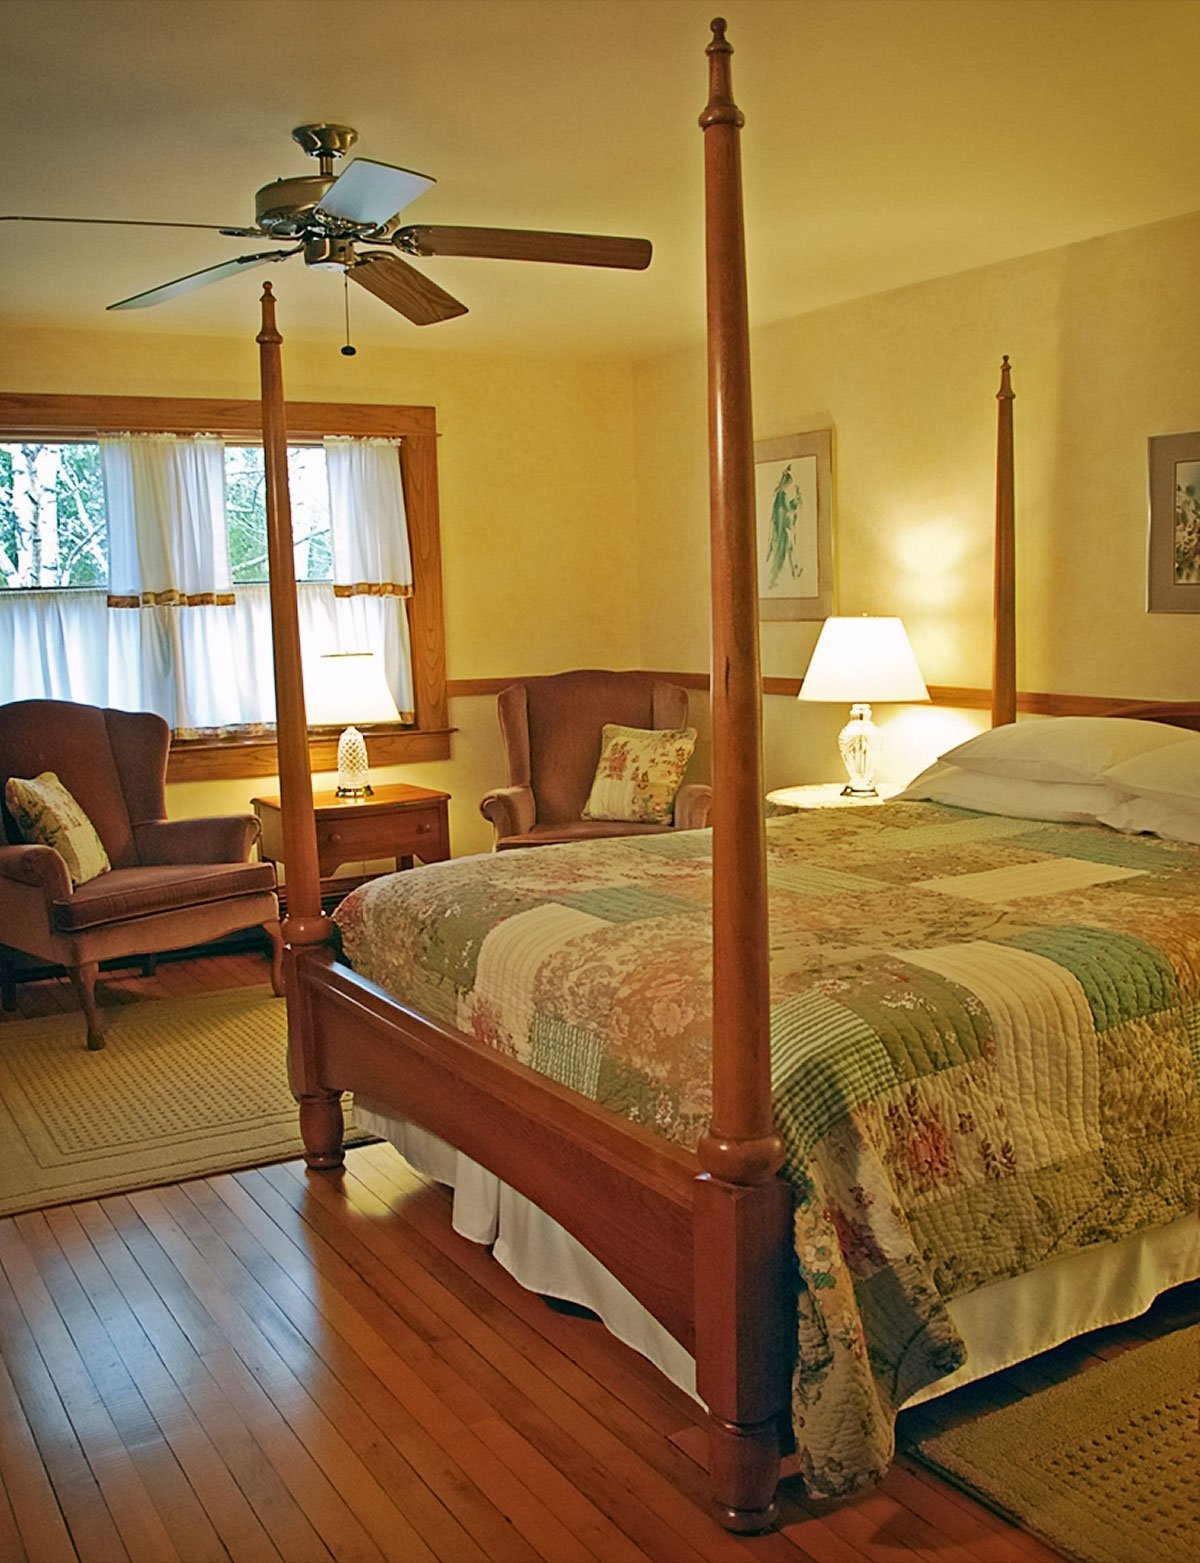 Whitefish Bay Farm B&B - Apple Blossom Room